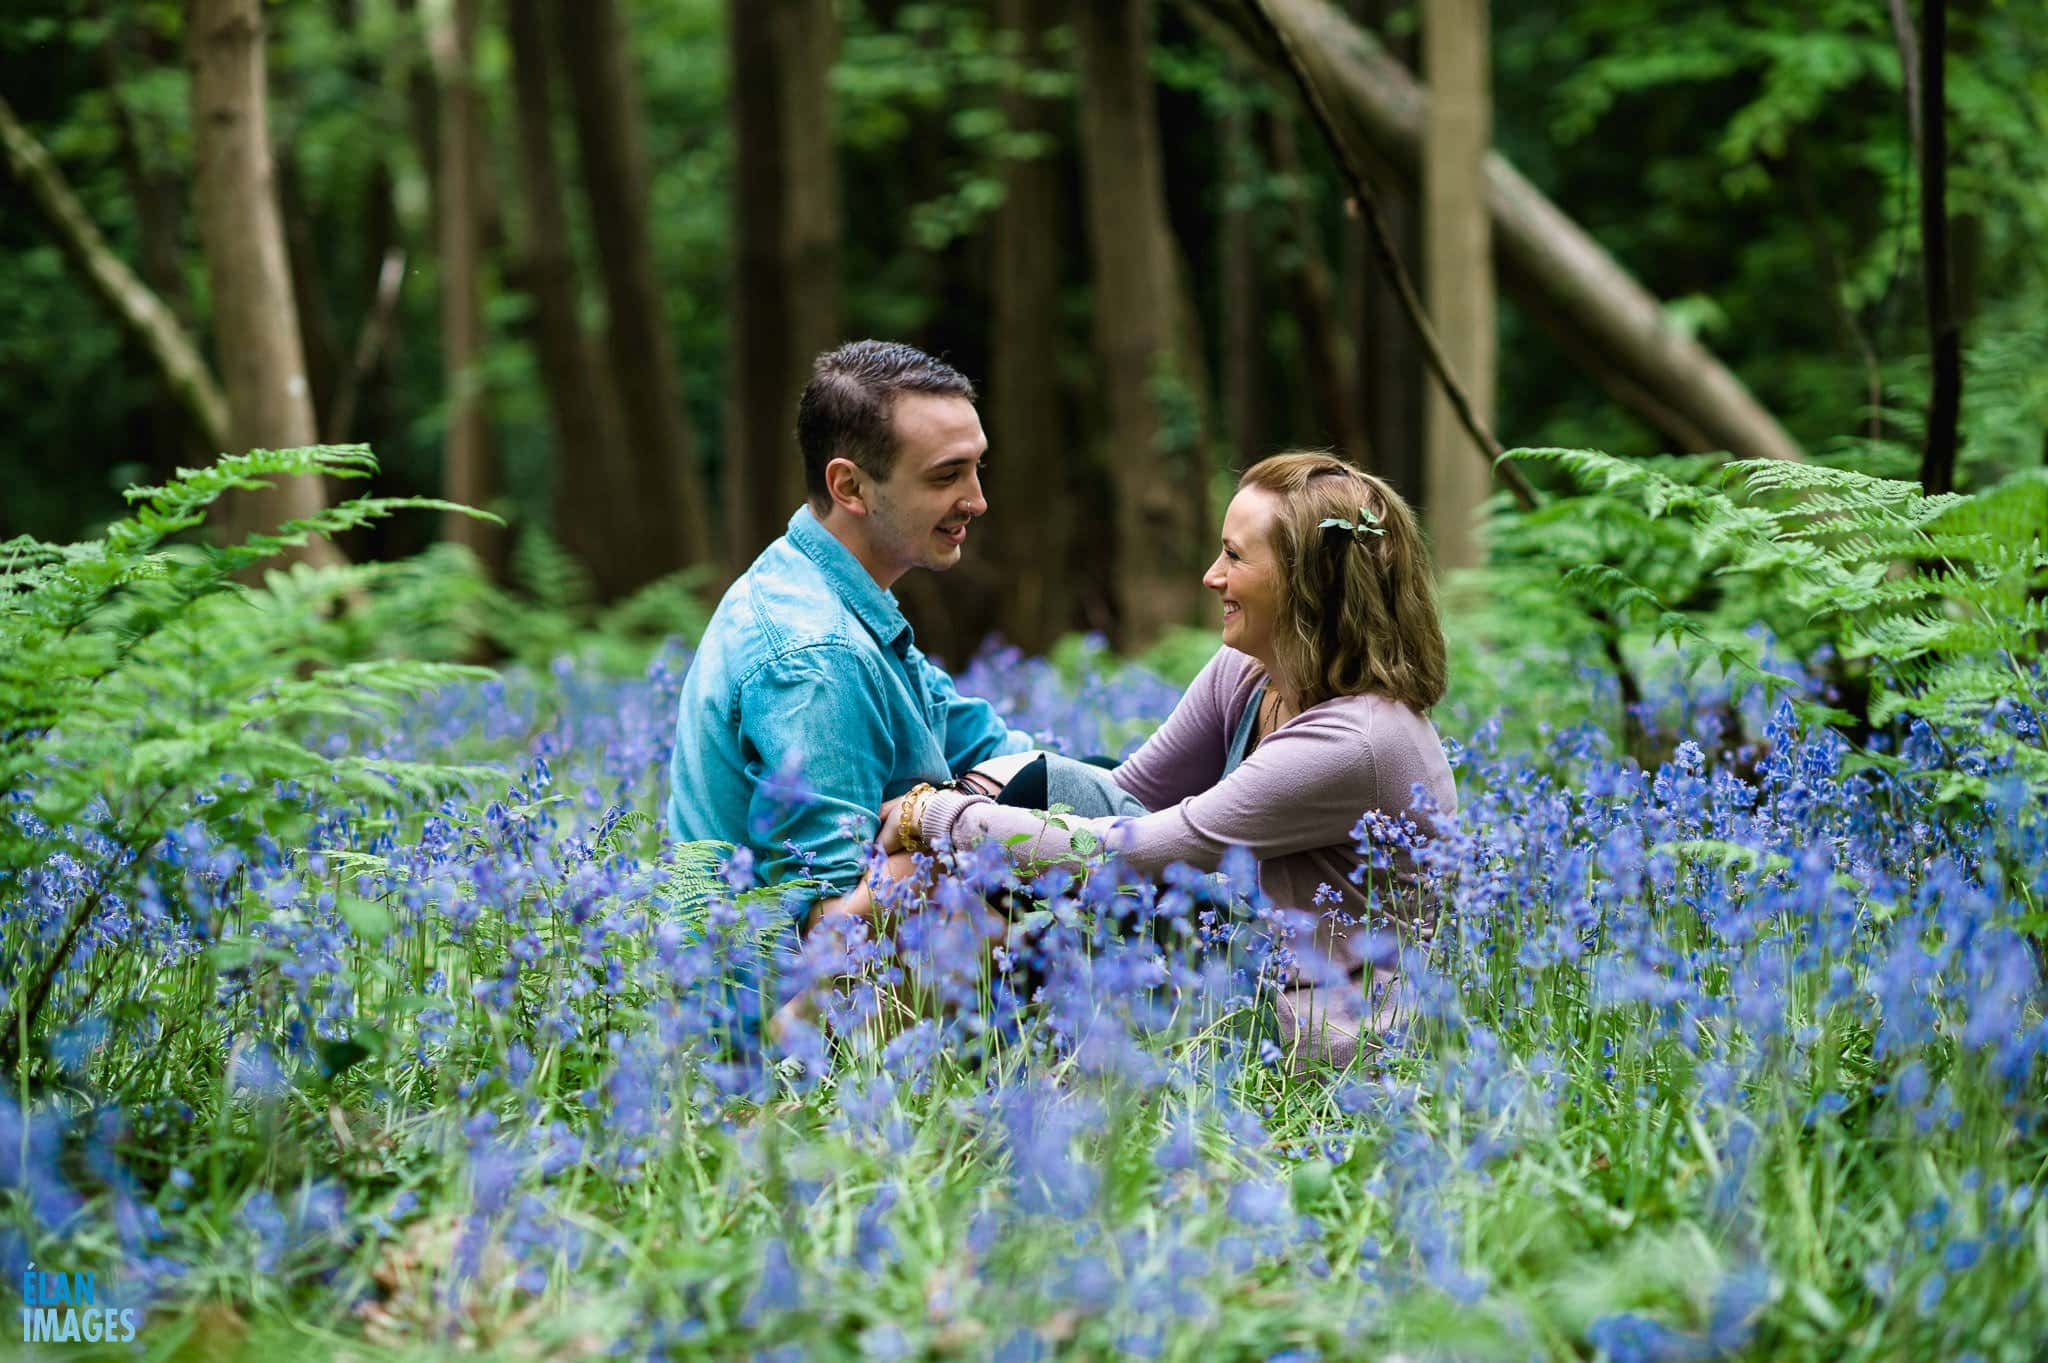 Engagement Photo Shoot in the Bluebell Woods near Bristol 13